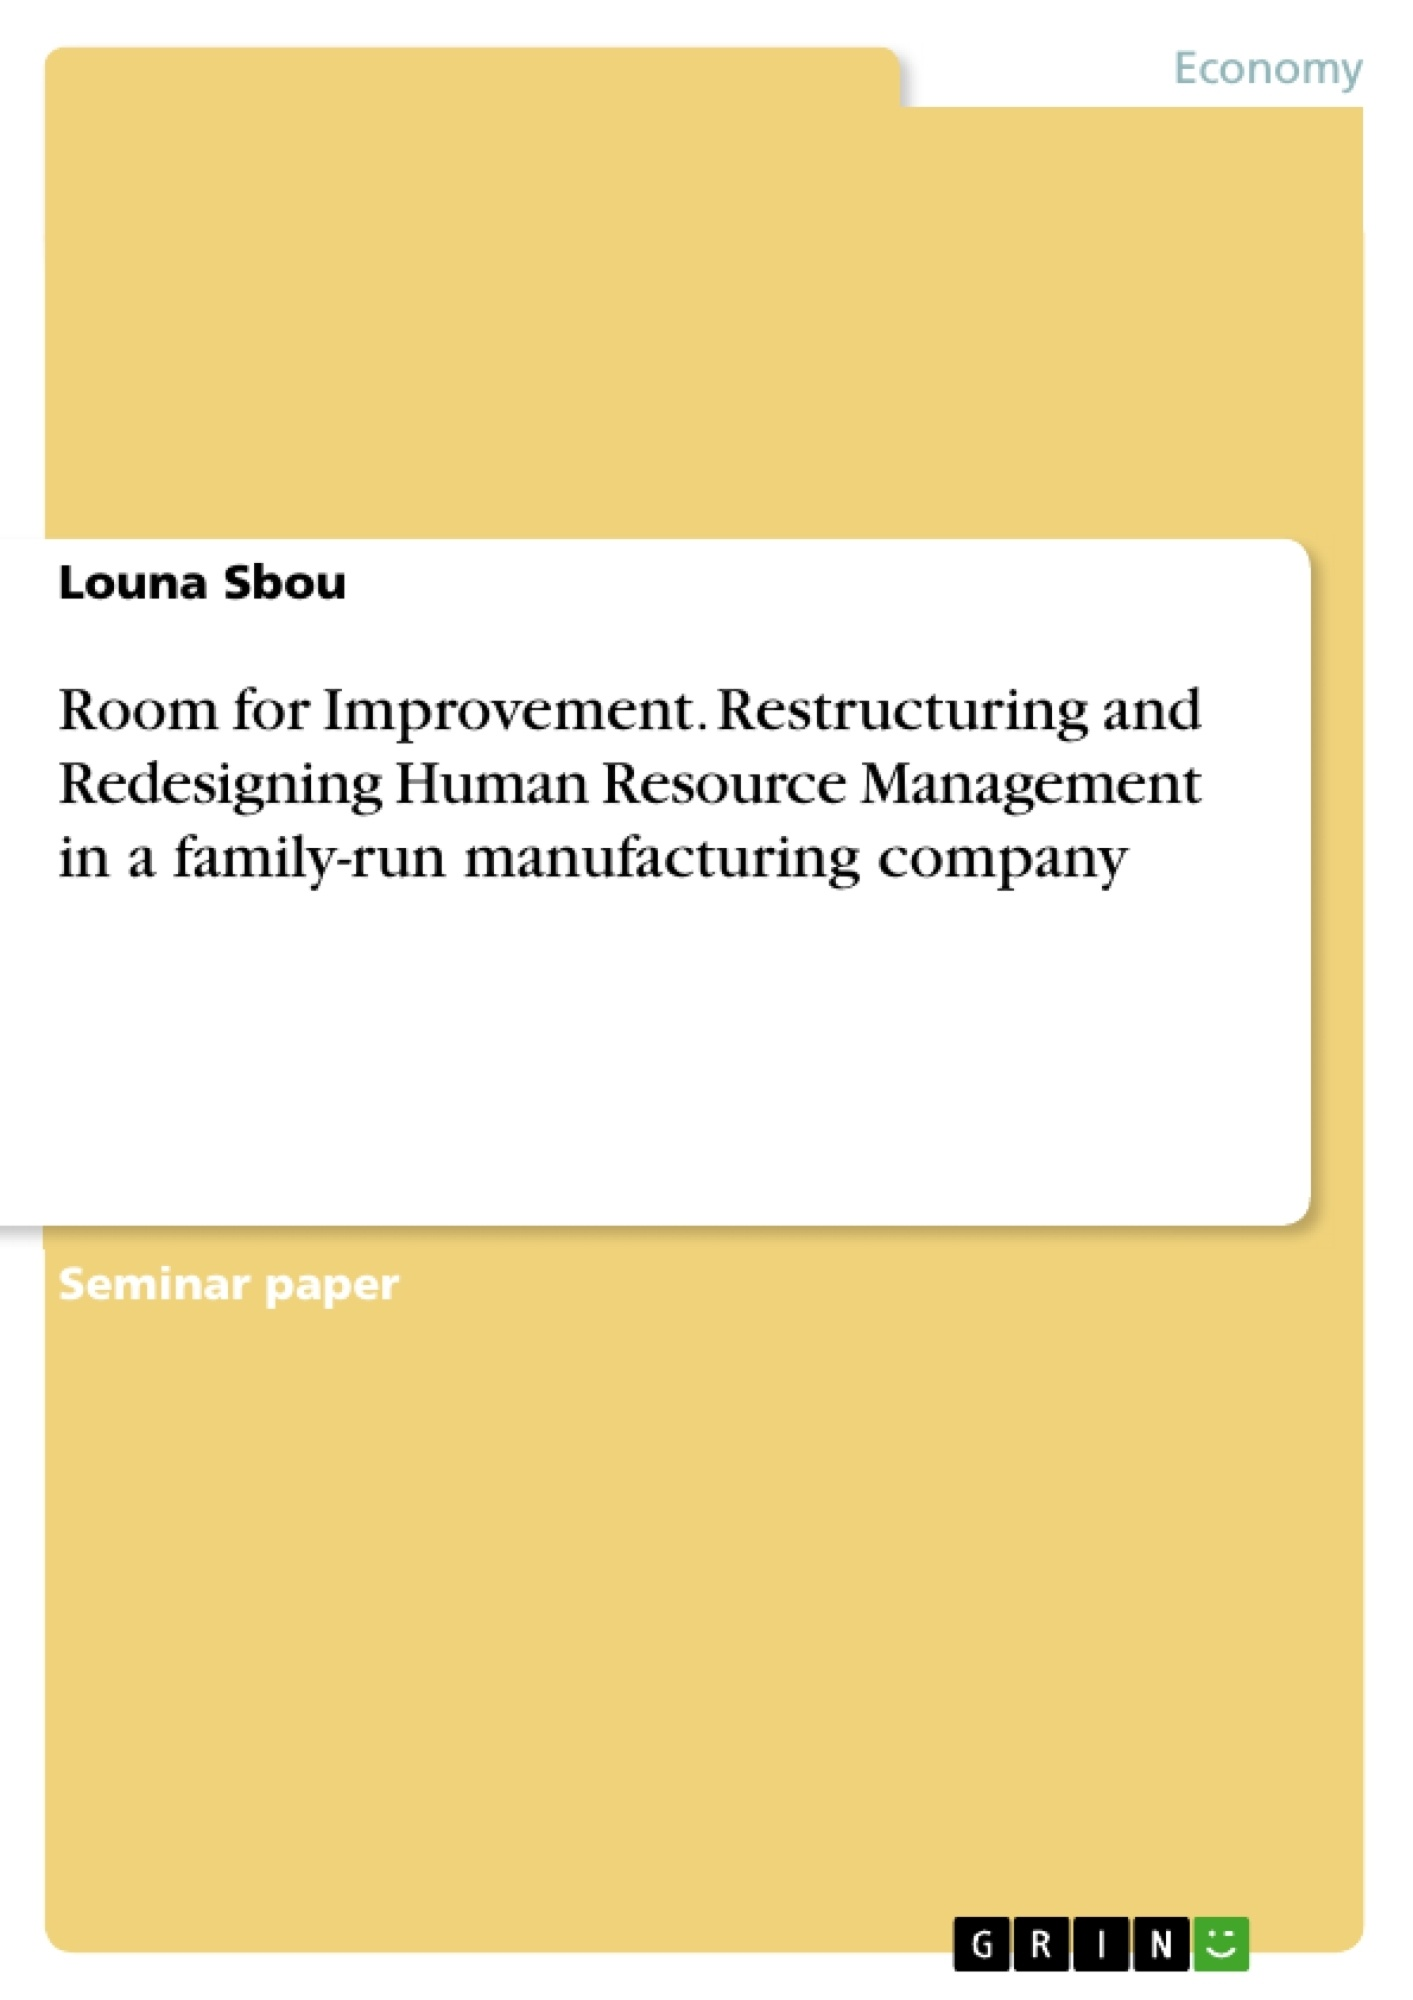 Title: Room for Improvement. Restructuring and Redesigning Human Resource Management in a family-run manufacturing company